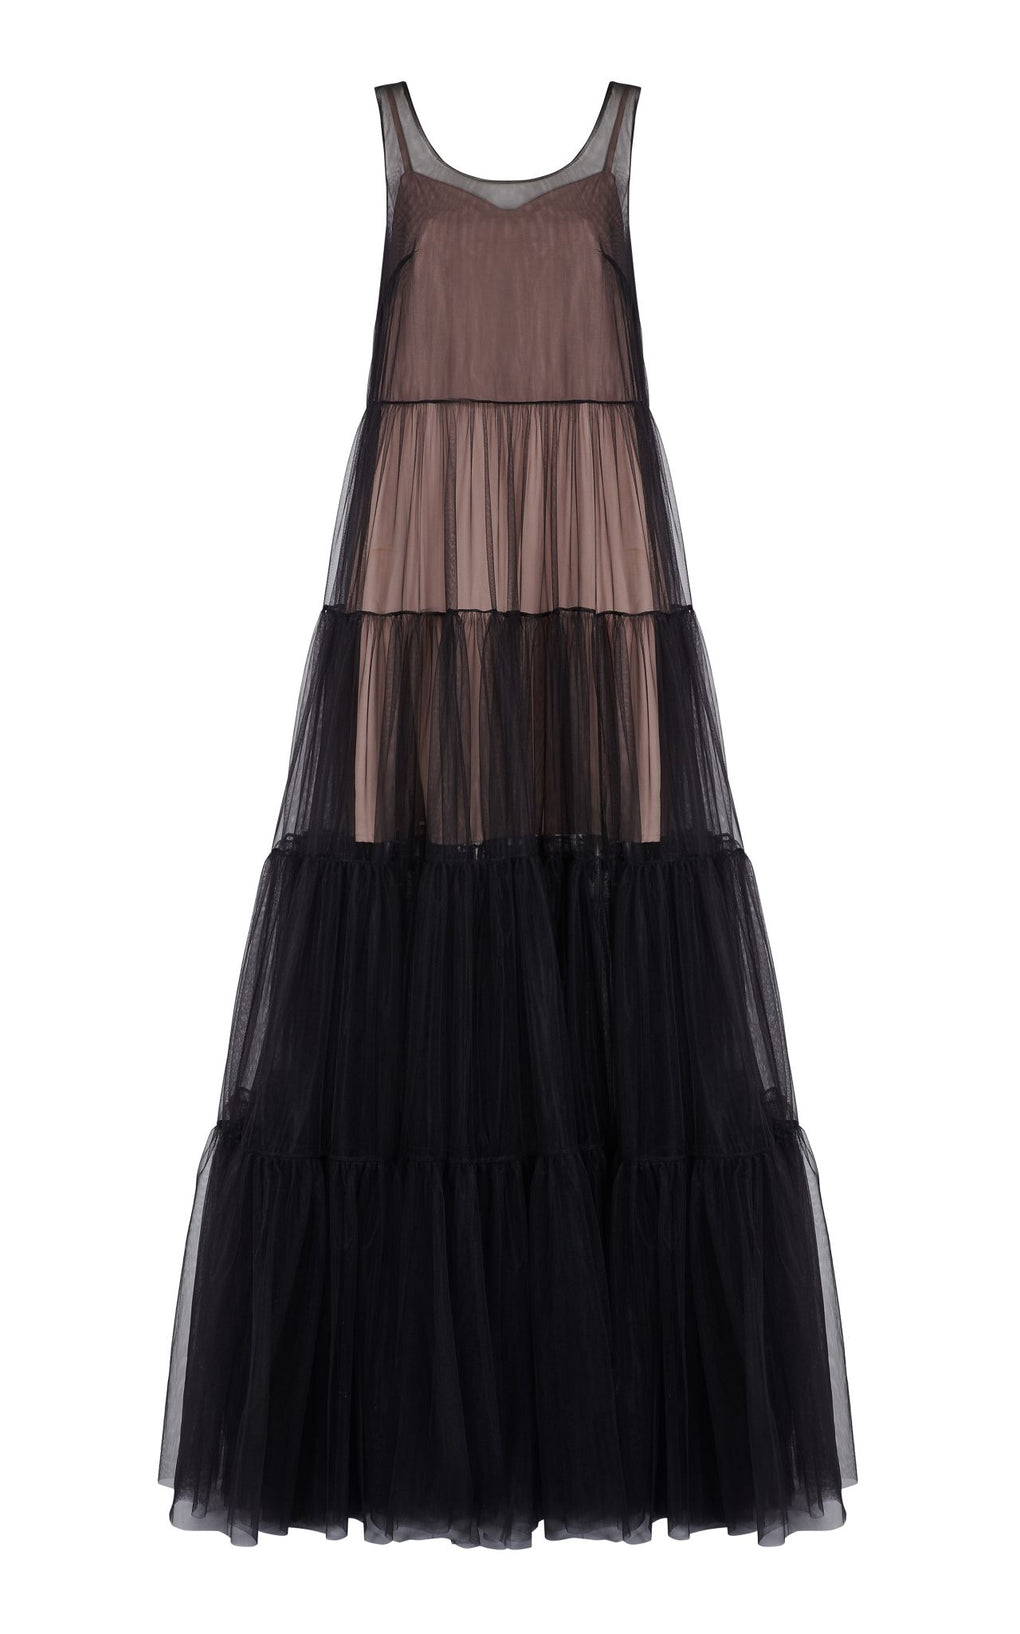 Black tulle layered shift dress